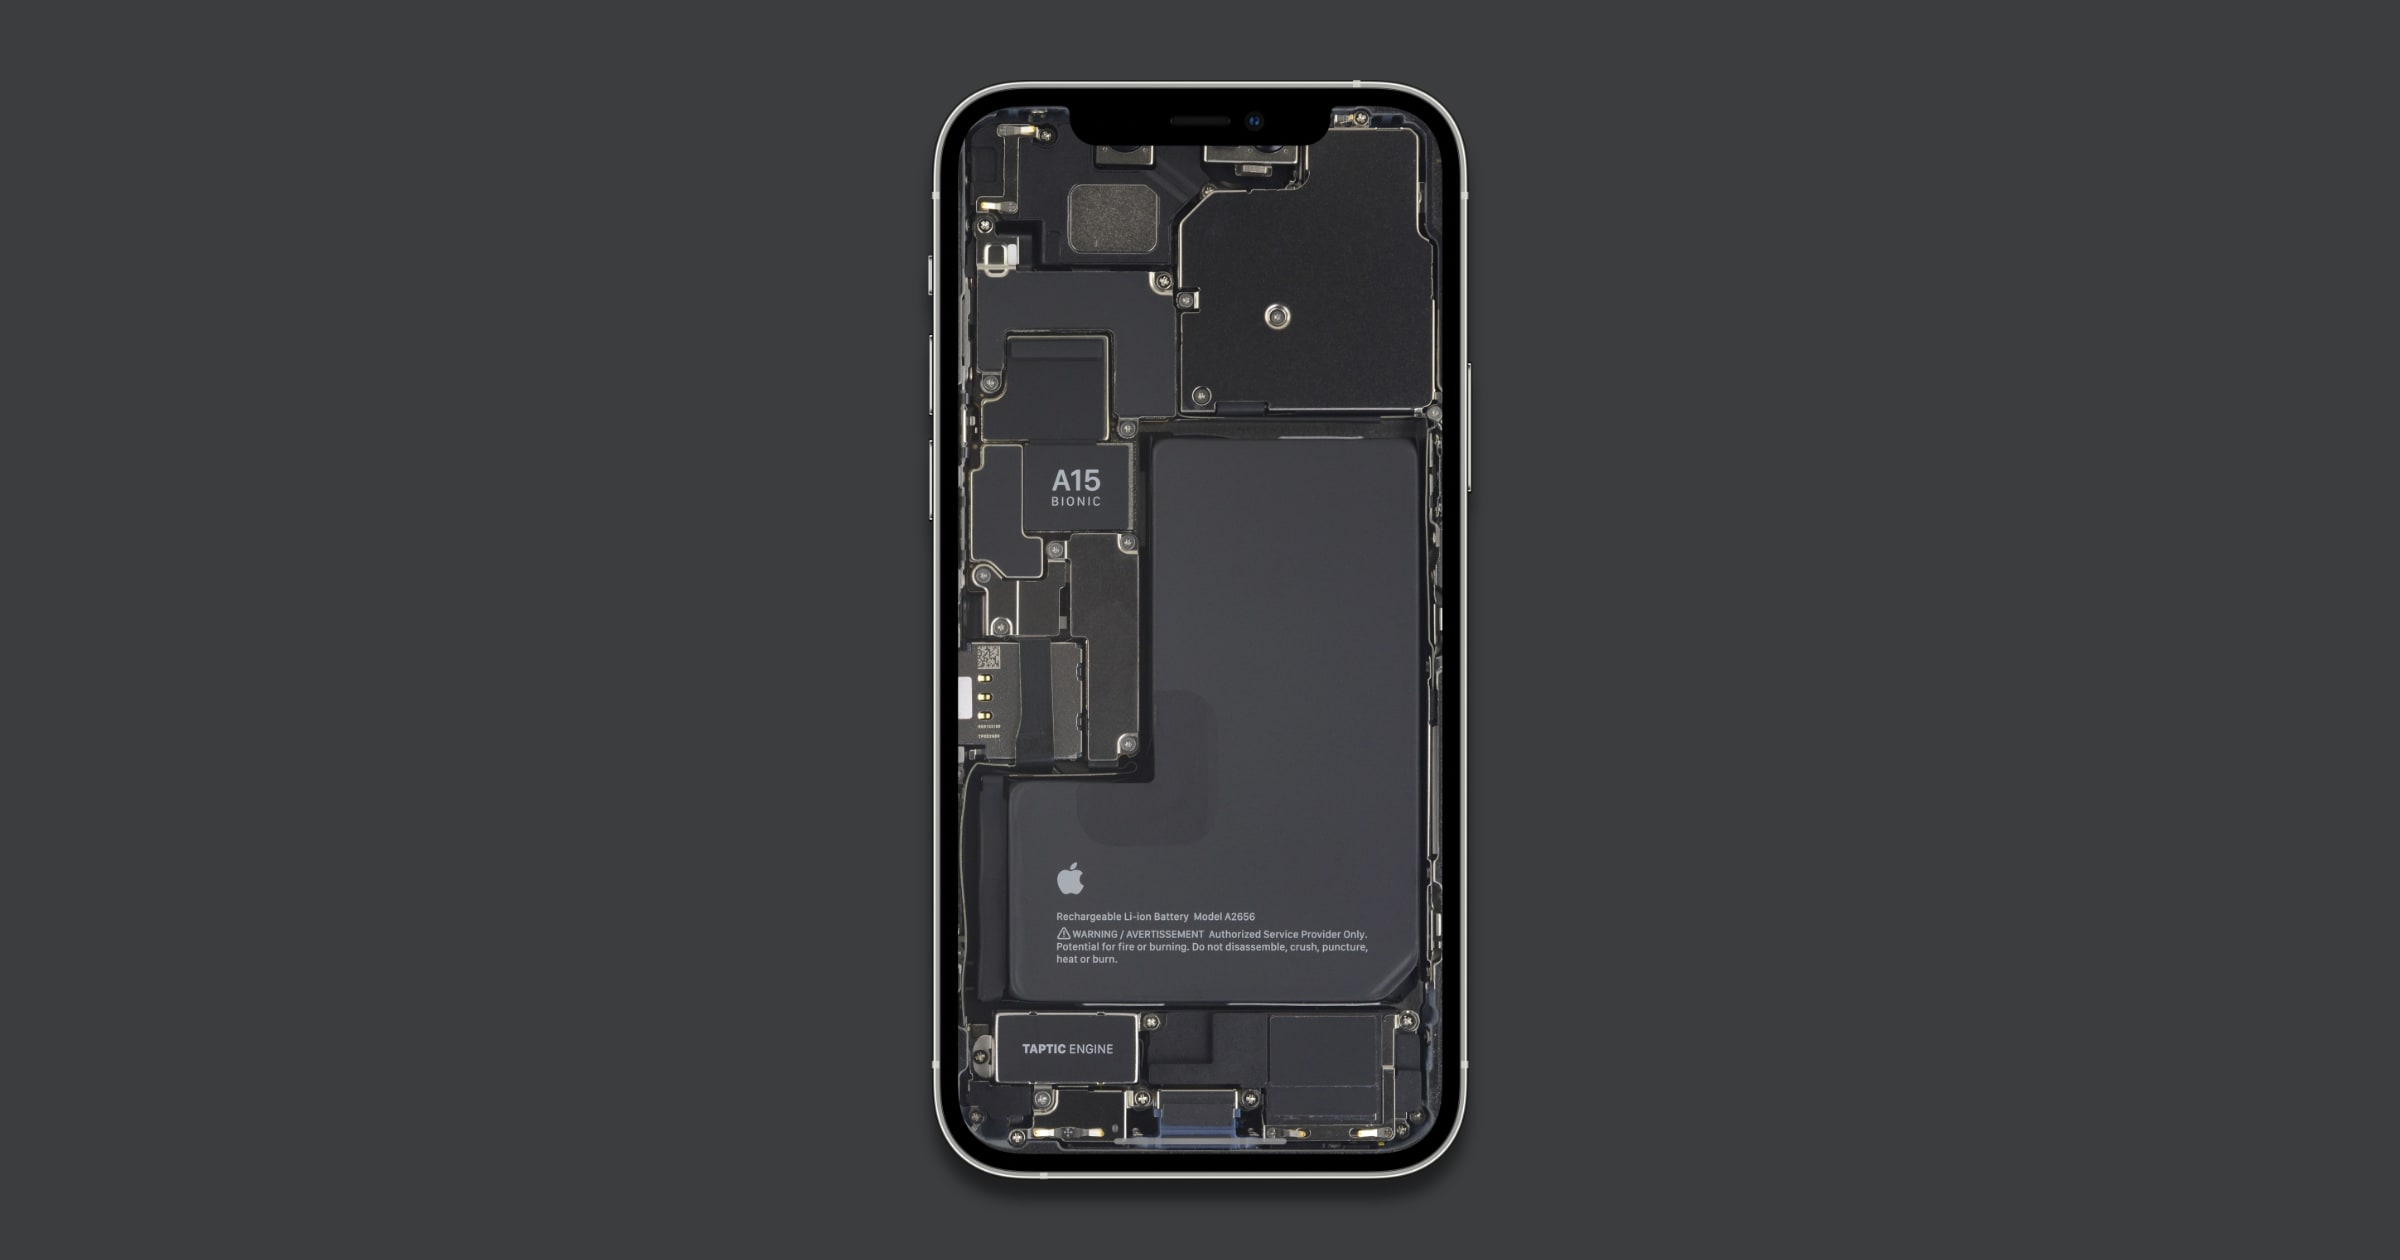 iFixit Shares New Teardown Wallpapers for iPhone 13 Pro Models